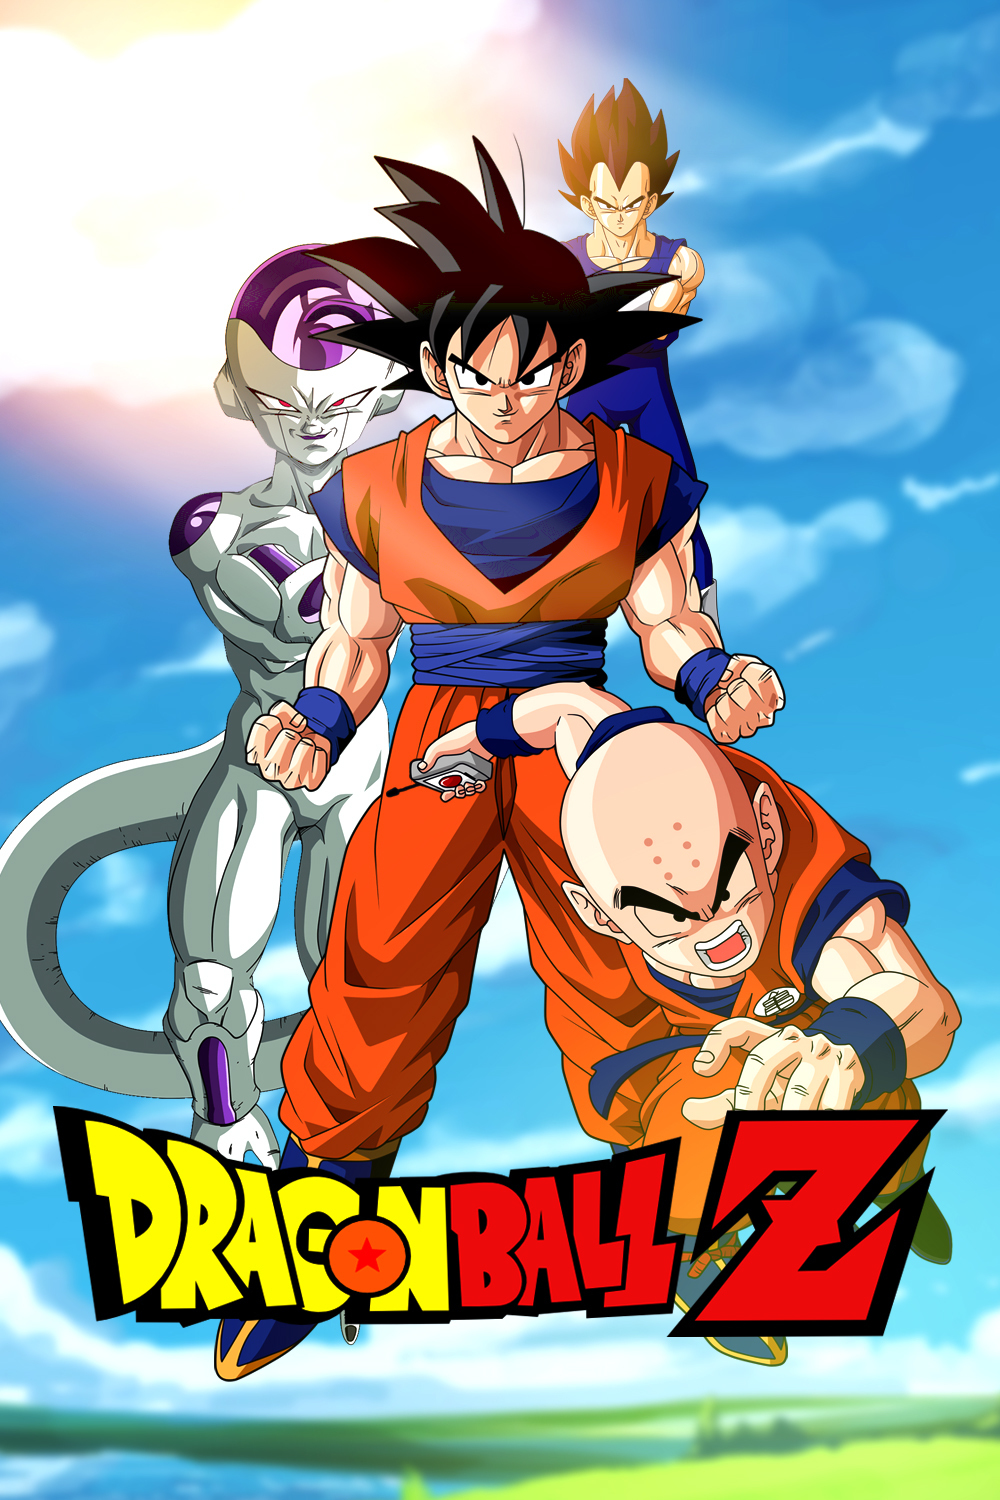 Dragon Ball Z TV Show Poster - ID 138192 - Image Abyss